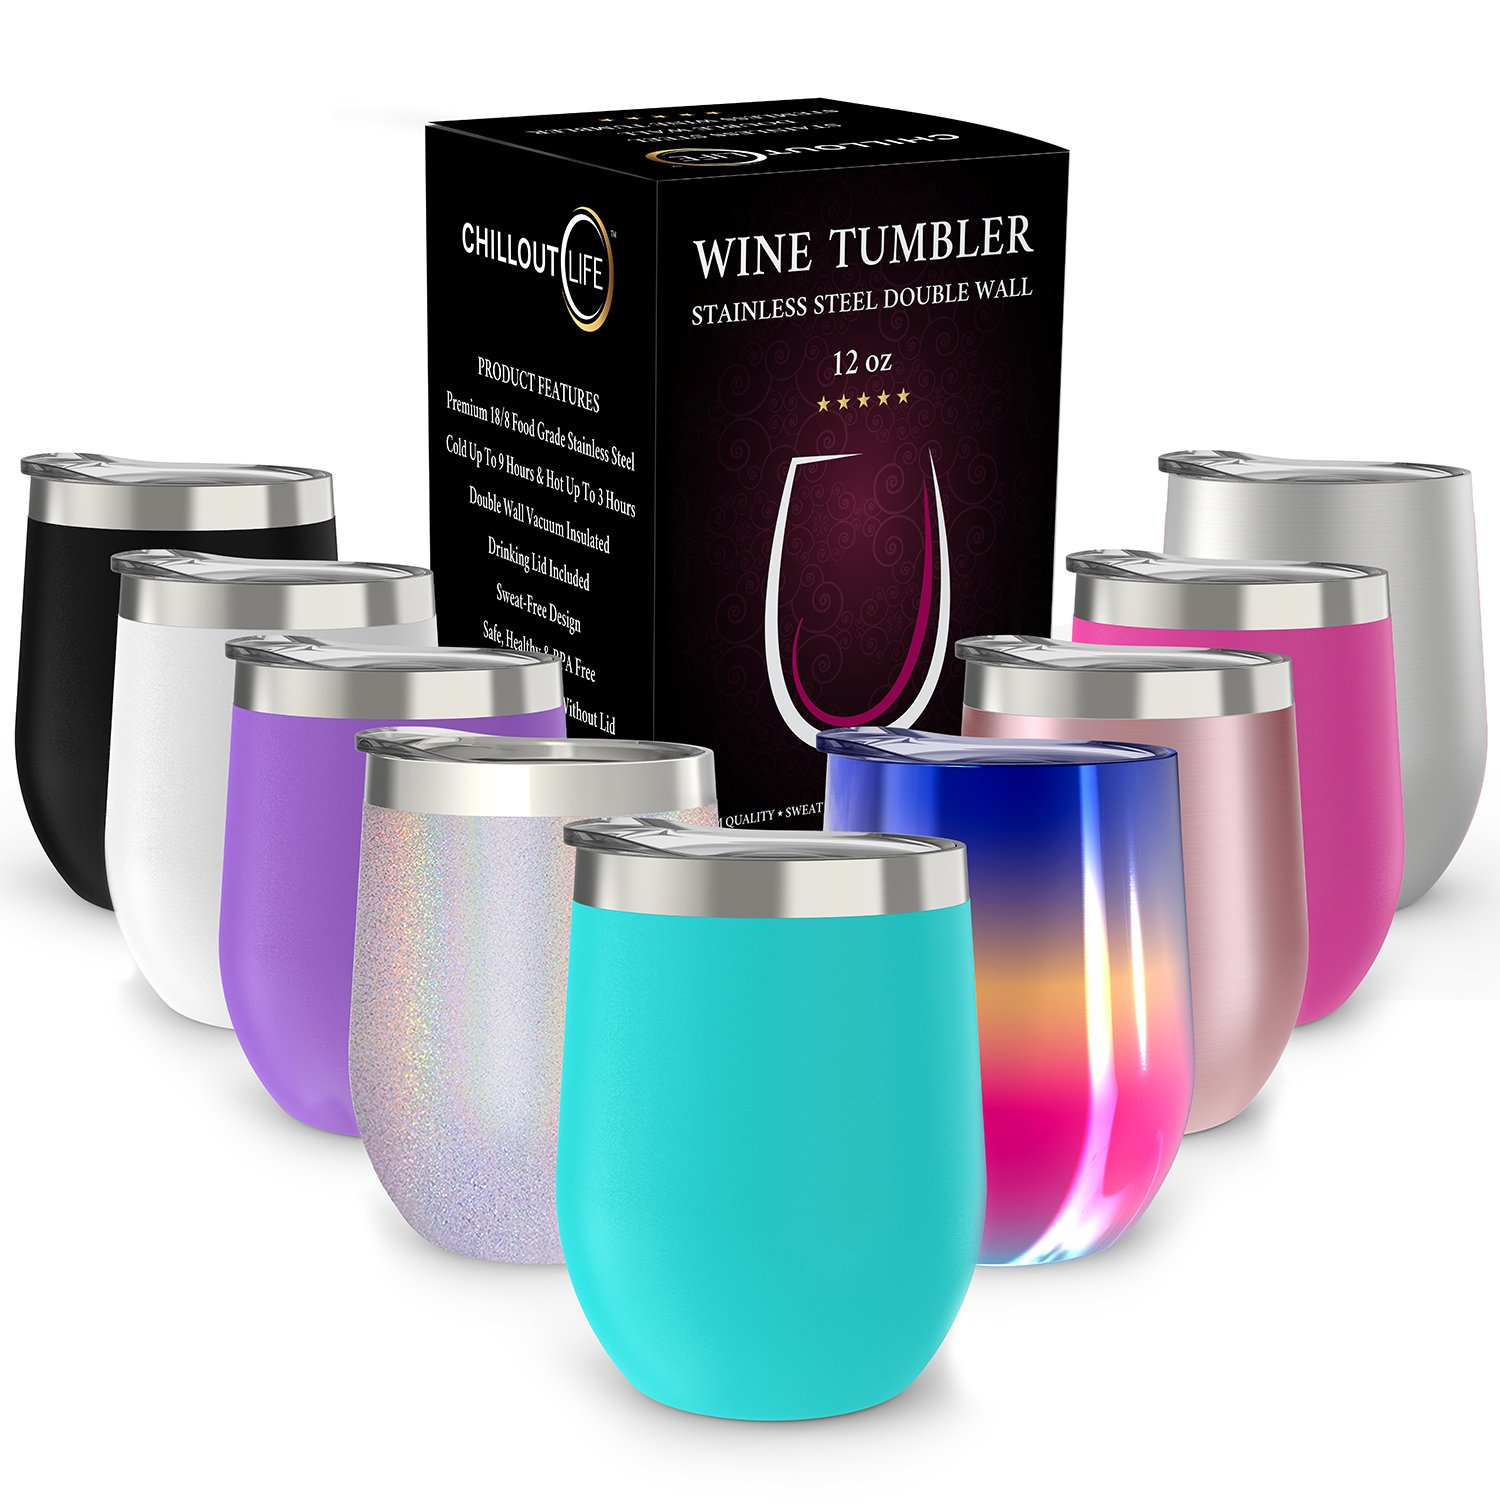 Stainless Steel Stemless Wine Glass Tumbler with Lid, 12 oz | Double Wall Vacuum Insulated Travel Tumbler Cup for Coffee, Wine, Cocktails, Ice Cream | Sweat Free, Unbreakable, BPA Free, Powder Coated by CHILLOUT LIFE